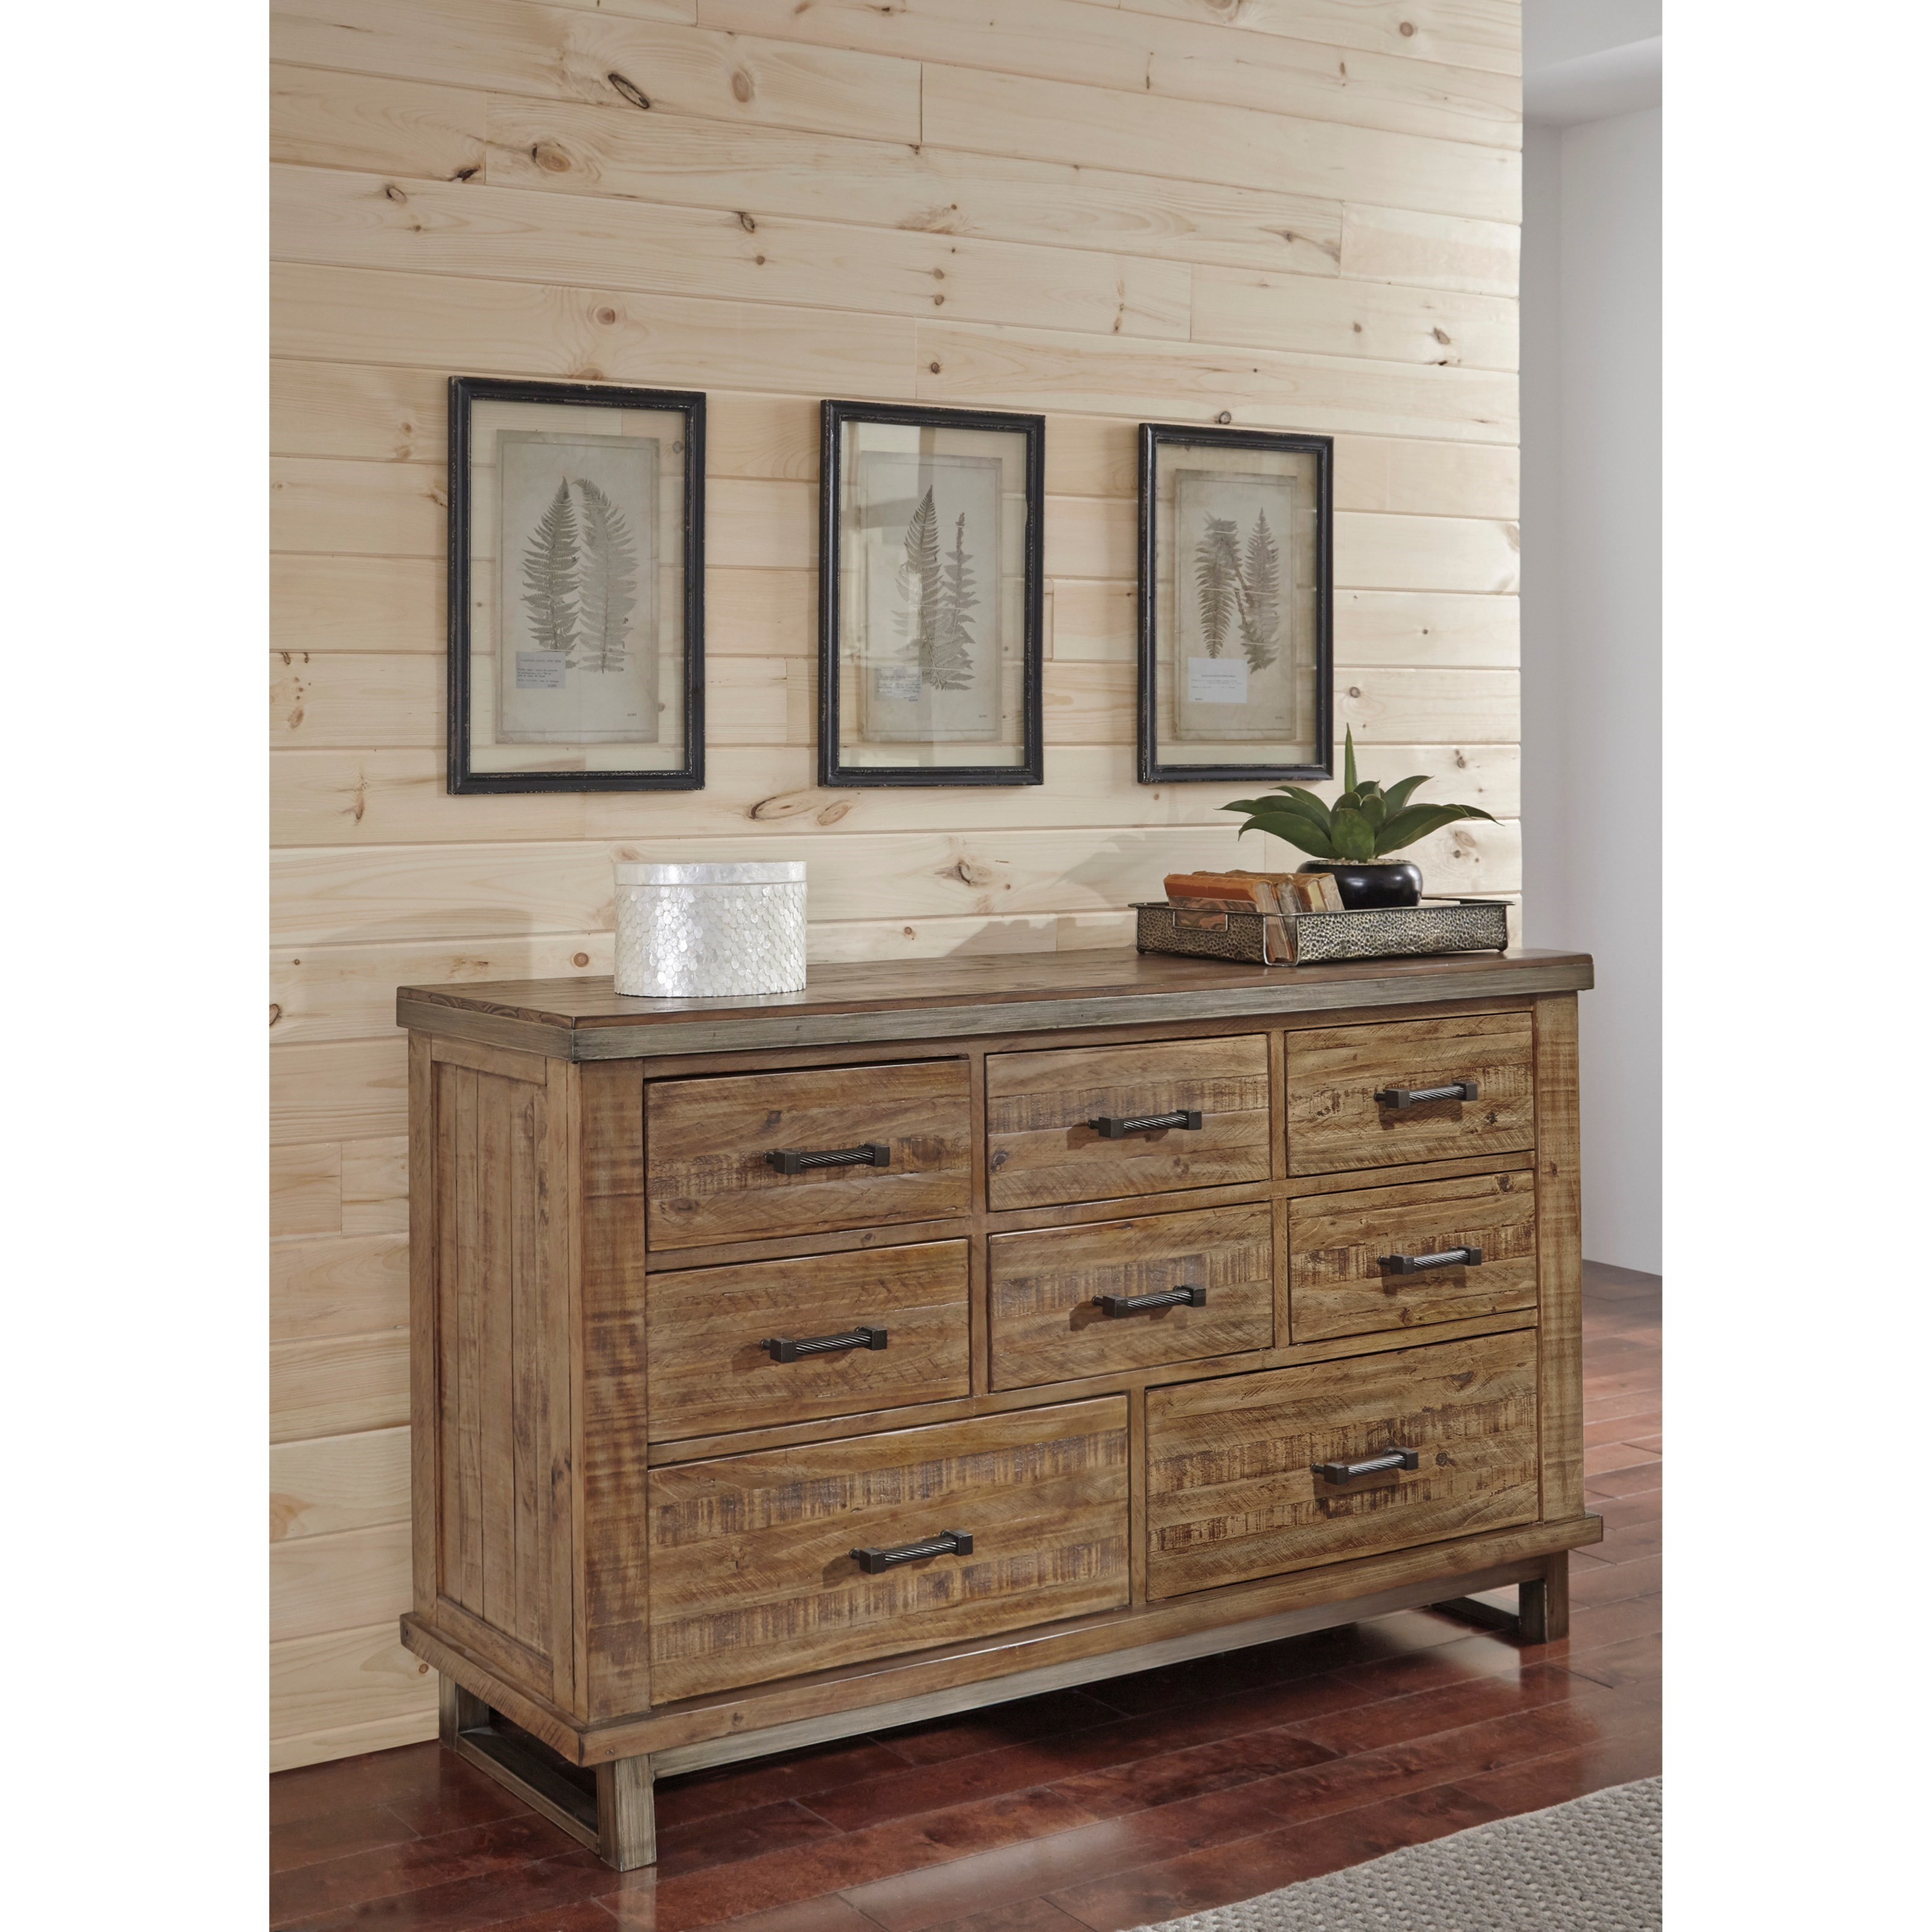 Ashley Bedroom Dressers Millennium Ledelle Dresser - Tcowa.com